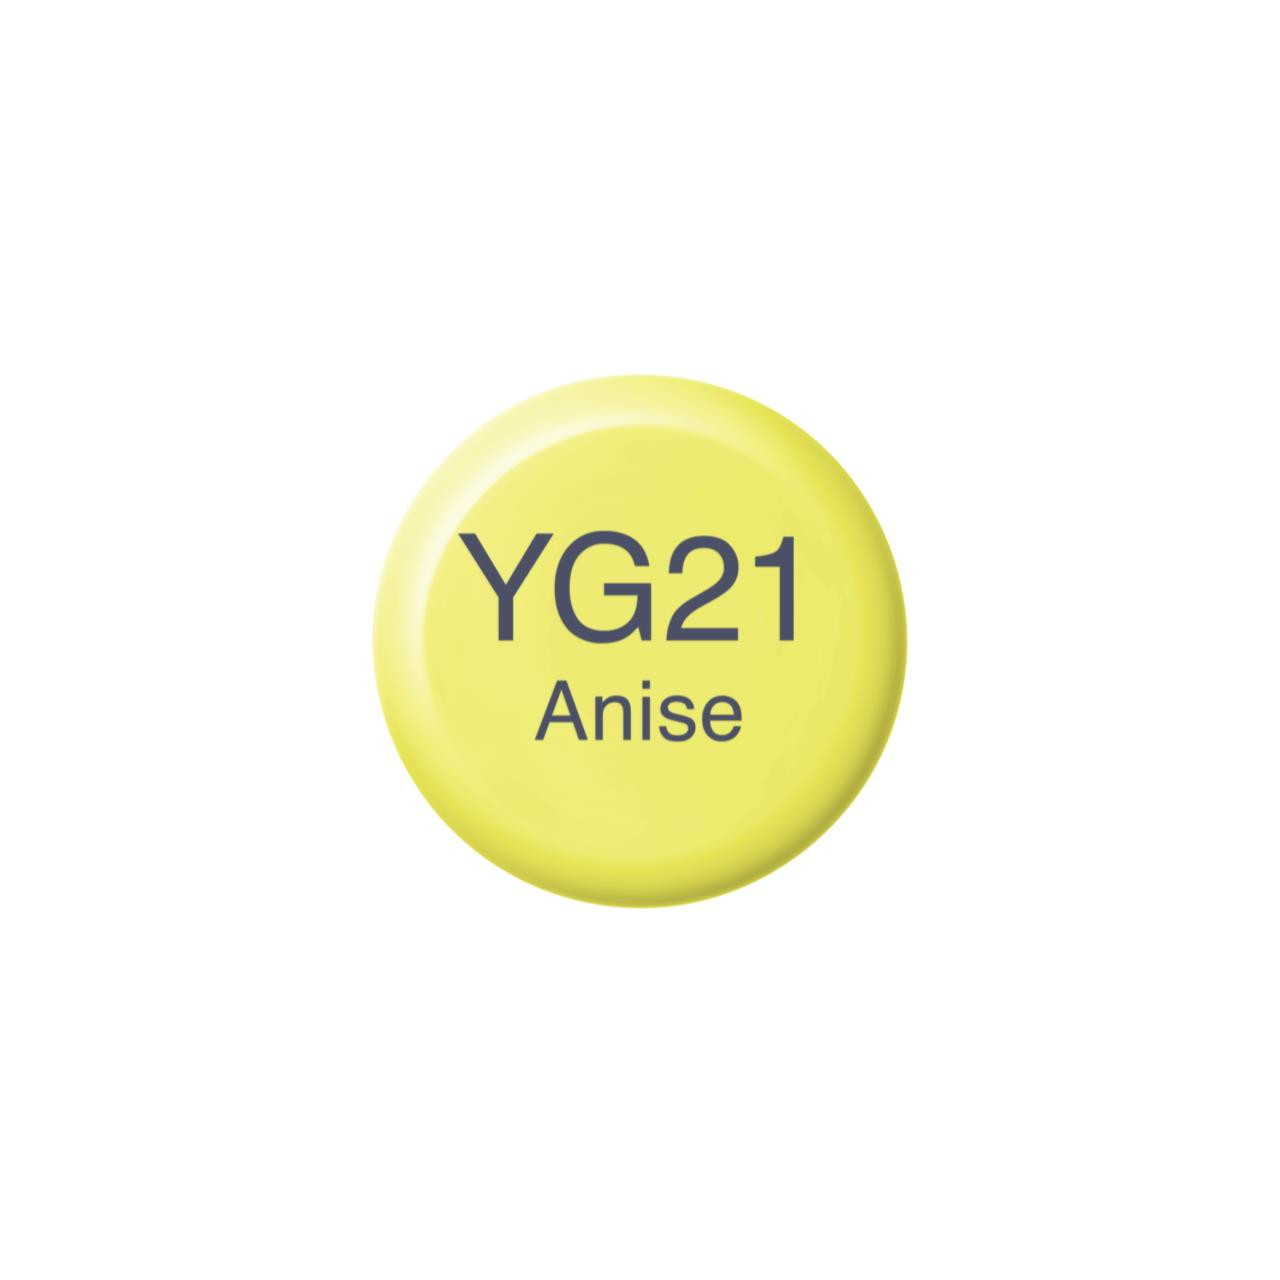 YG21 Anise, Copic Ink - 4511338058459